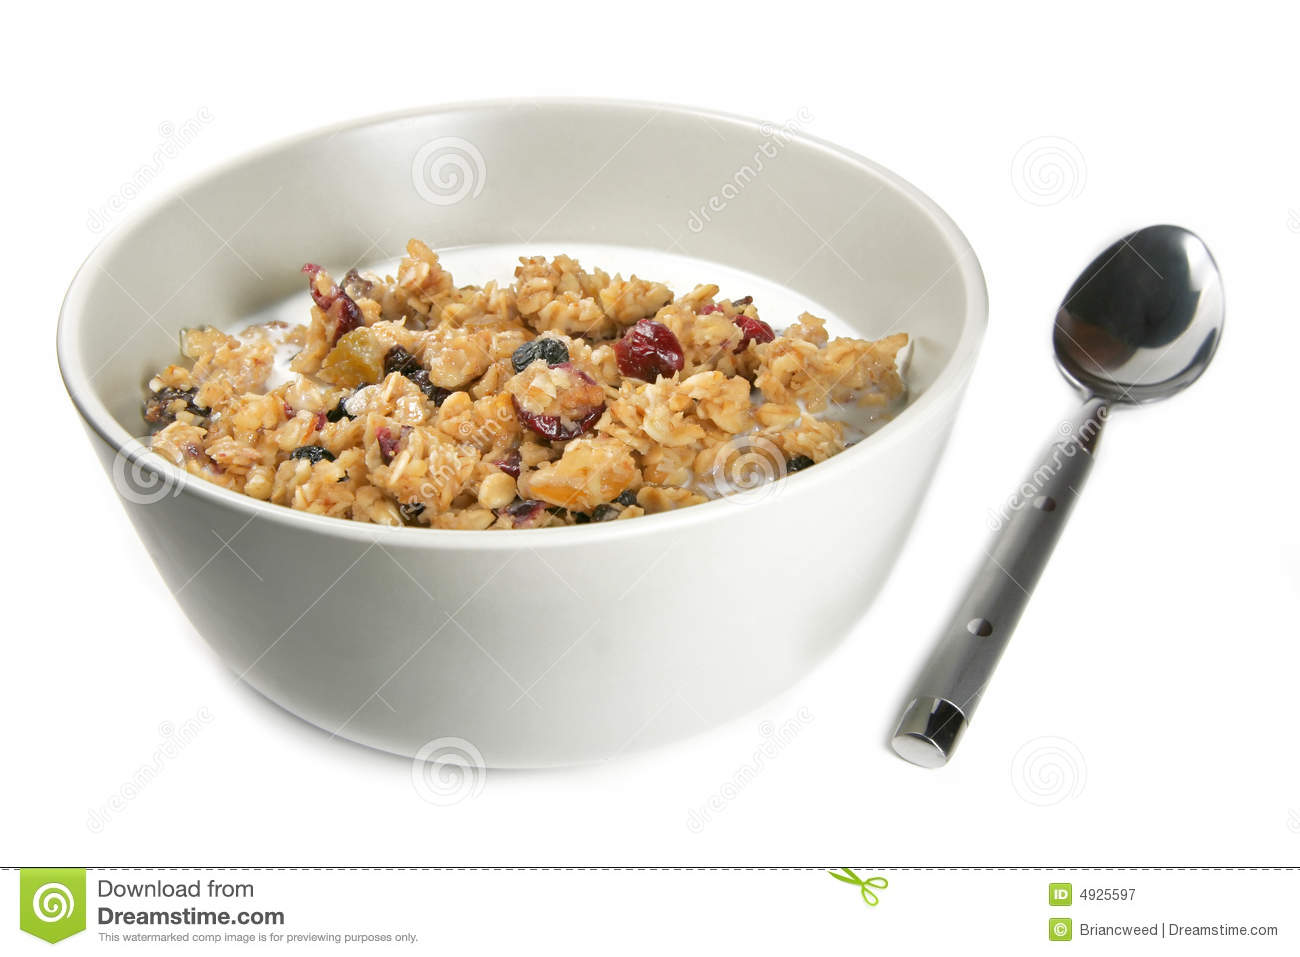 macro environments and breakfast cereals This whole foods market pestel/pestle analysis and case study enumerates the external factors in the company's remote or macro-environment and their impact.